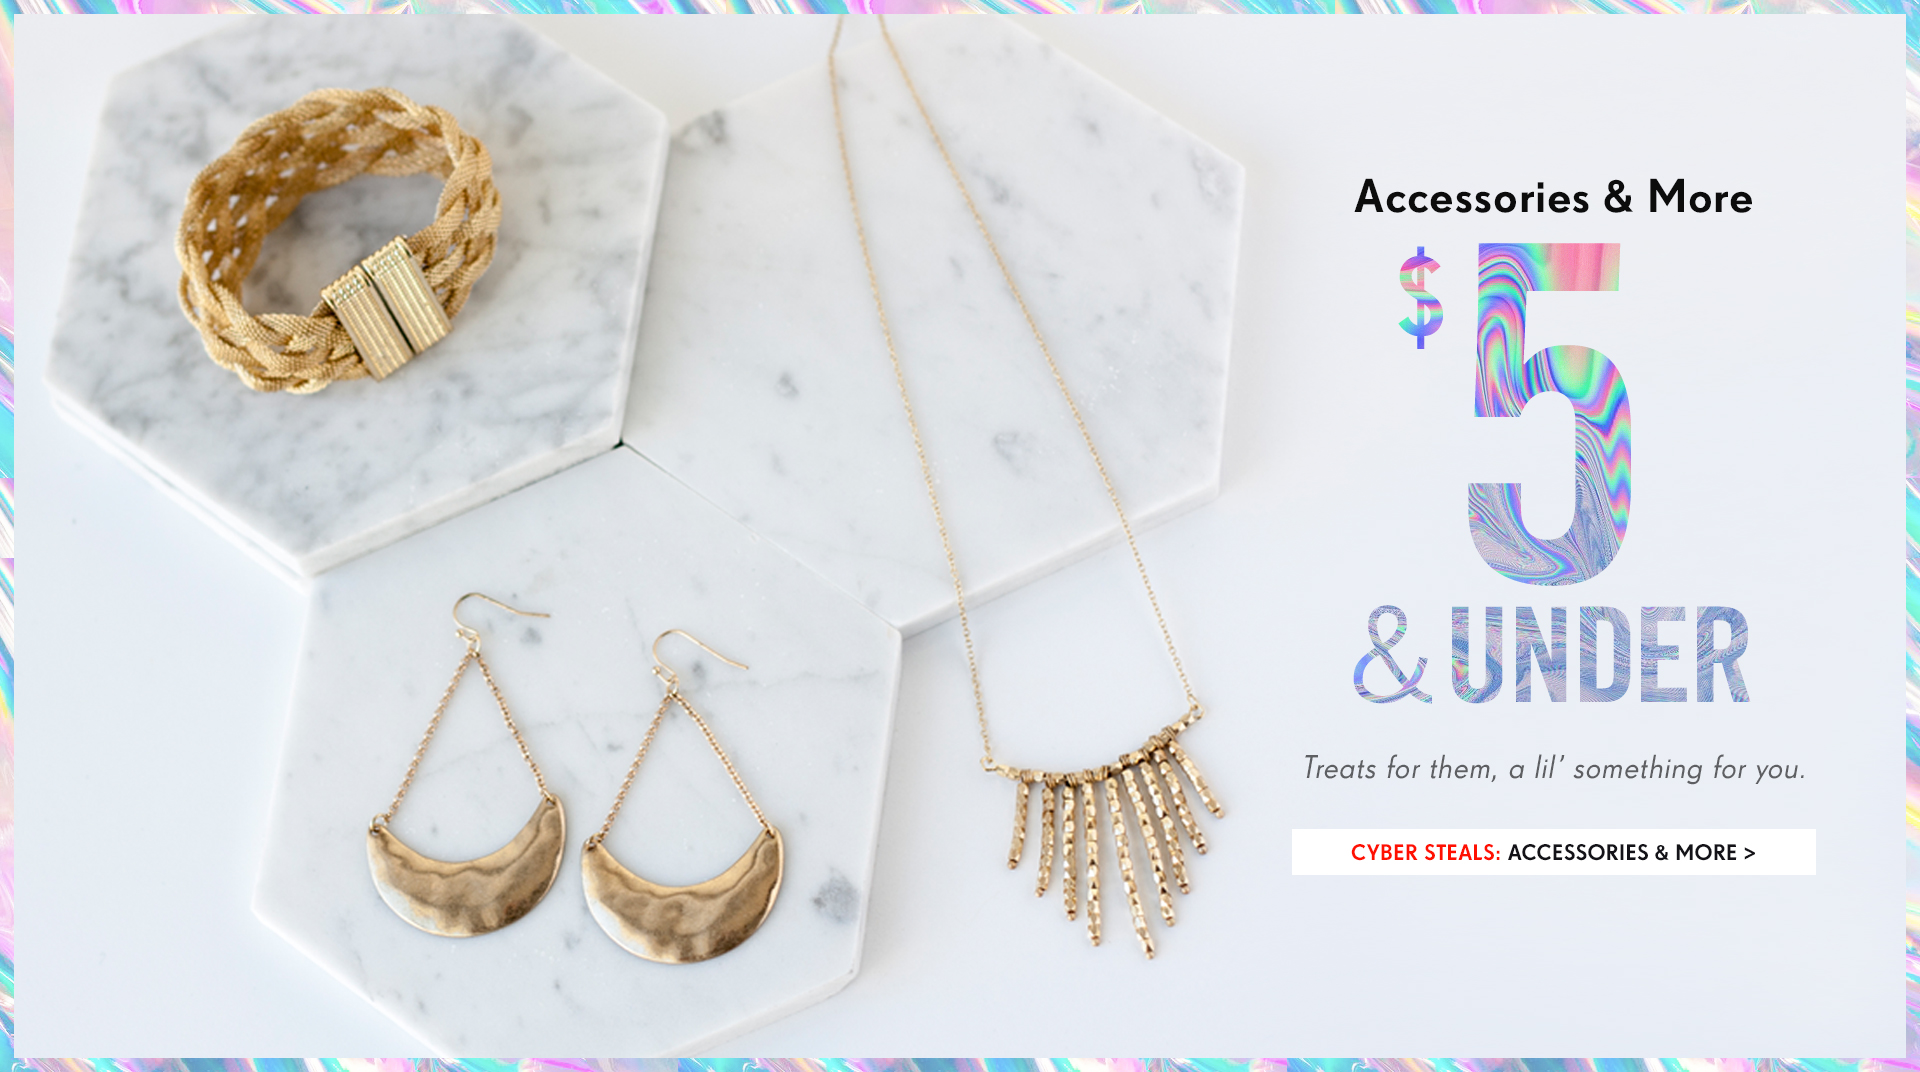 Shop Accessories & More